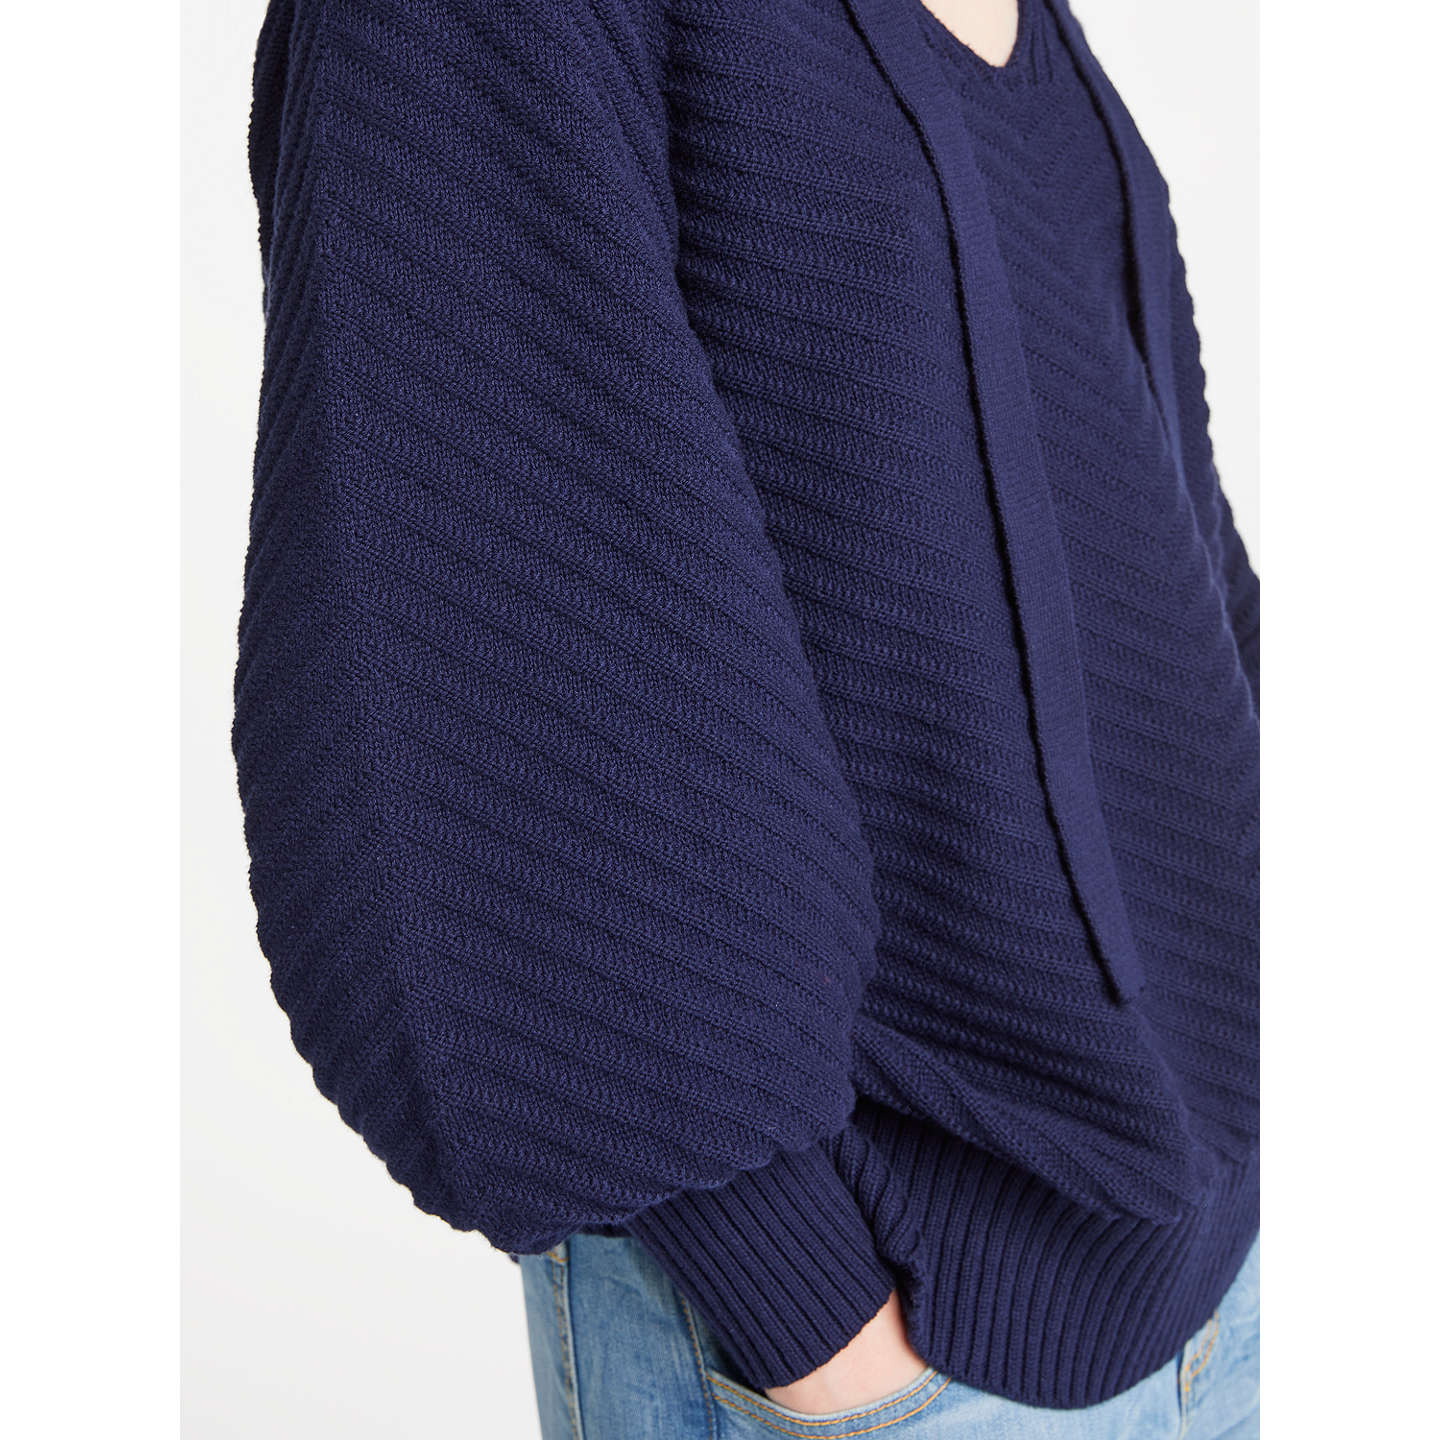 BuyAND/OR Lexy Chevron Jumper, Navy, XS Online at johnlewis.com